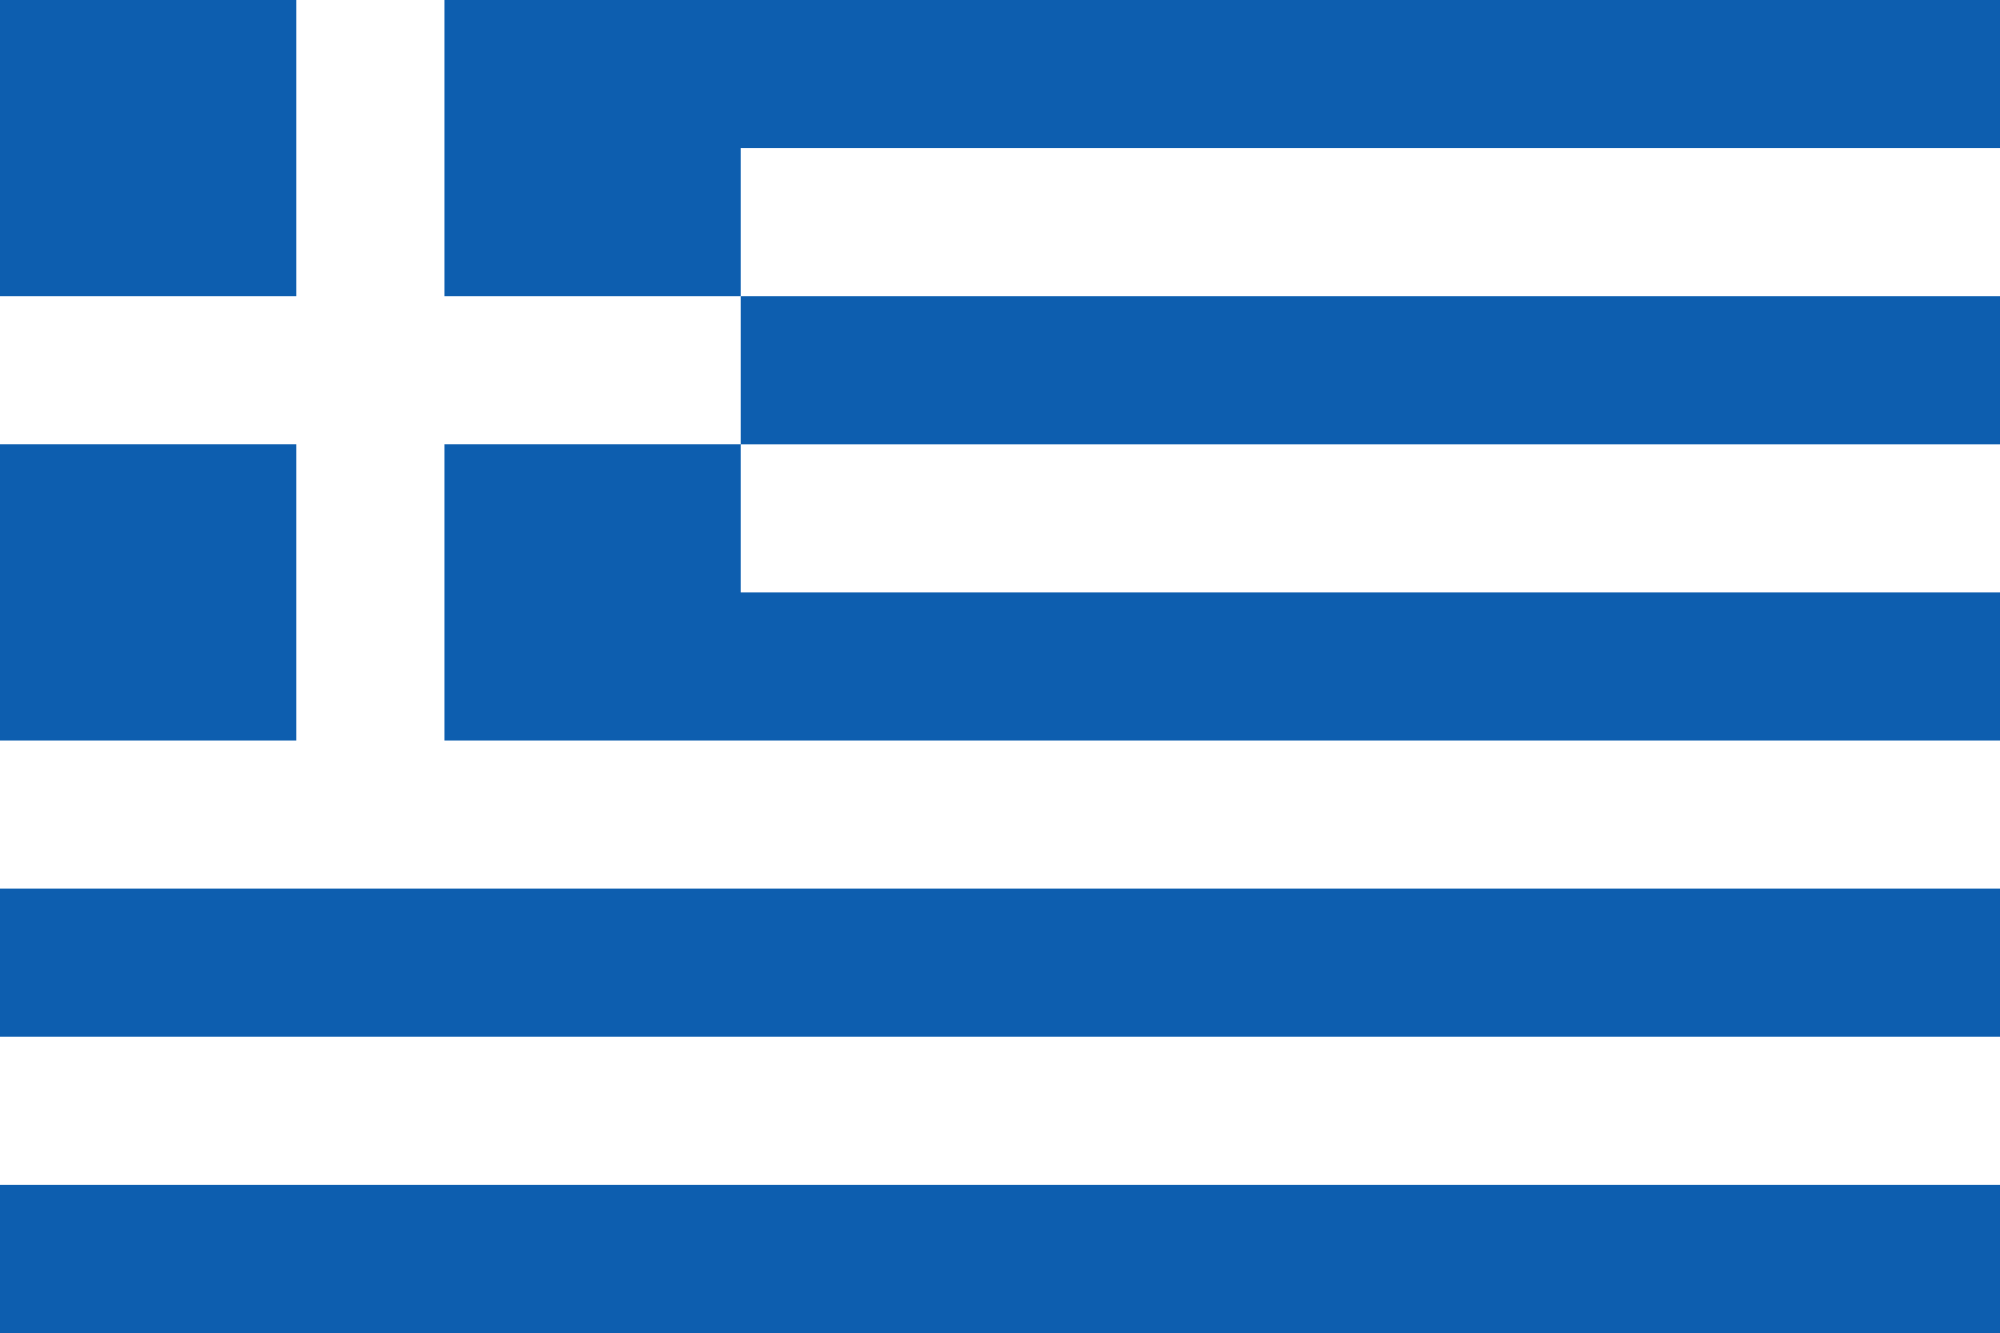 Greek Flag Images